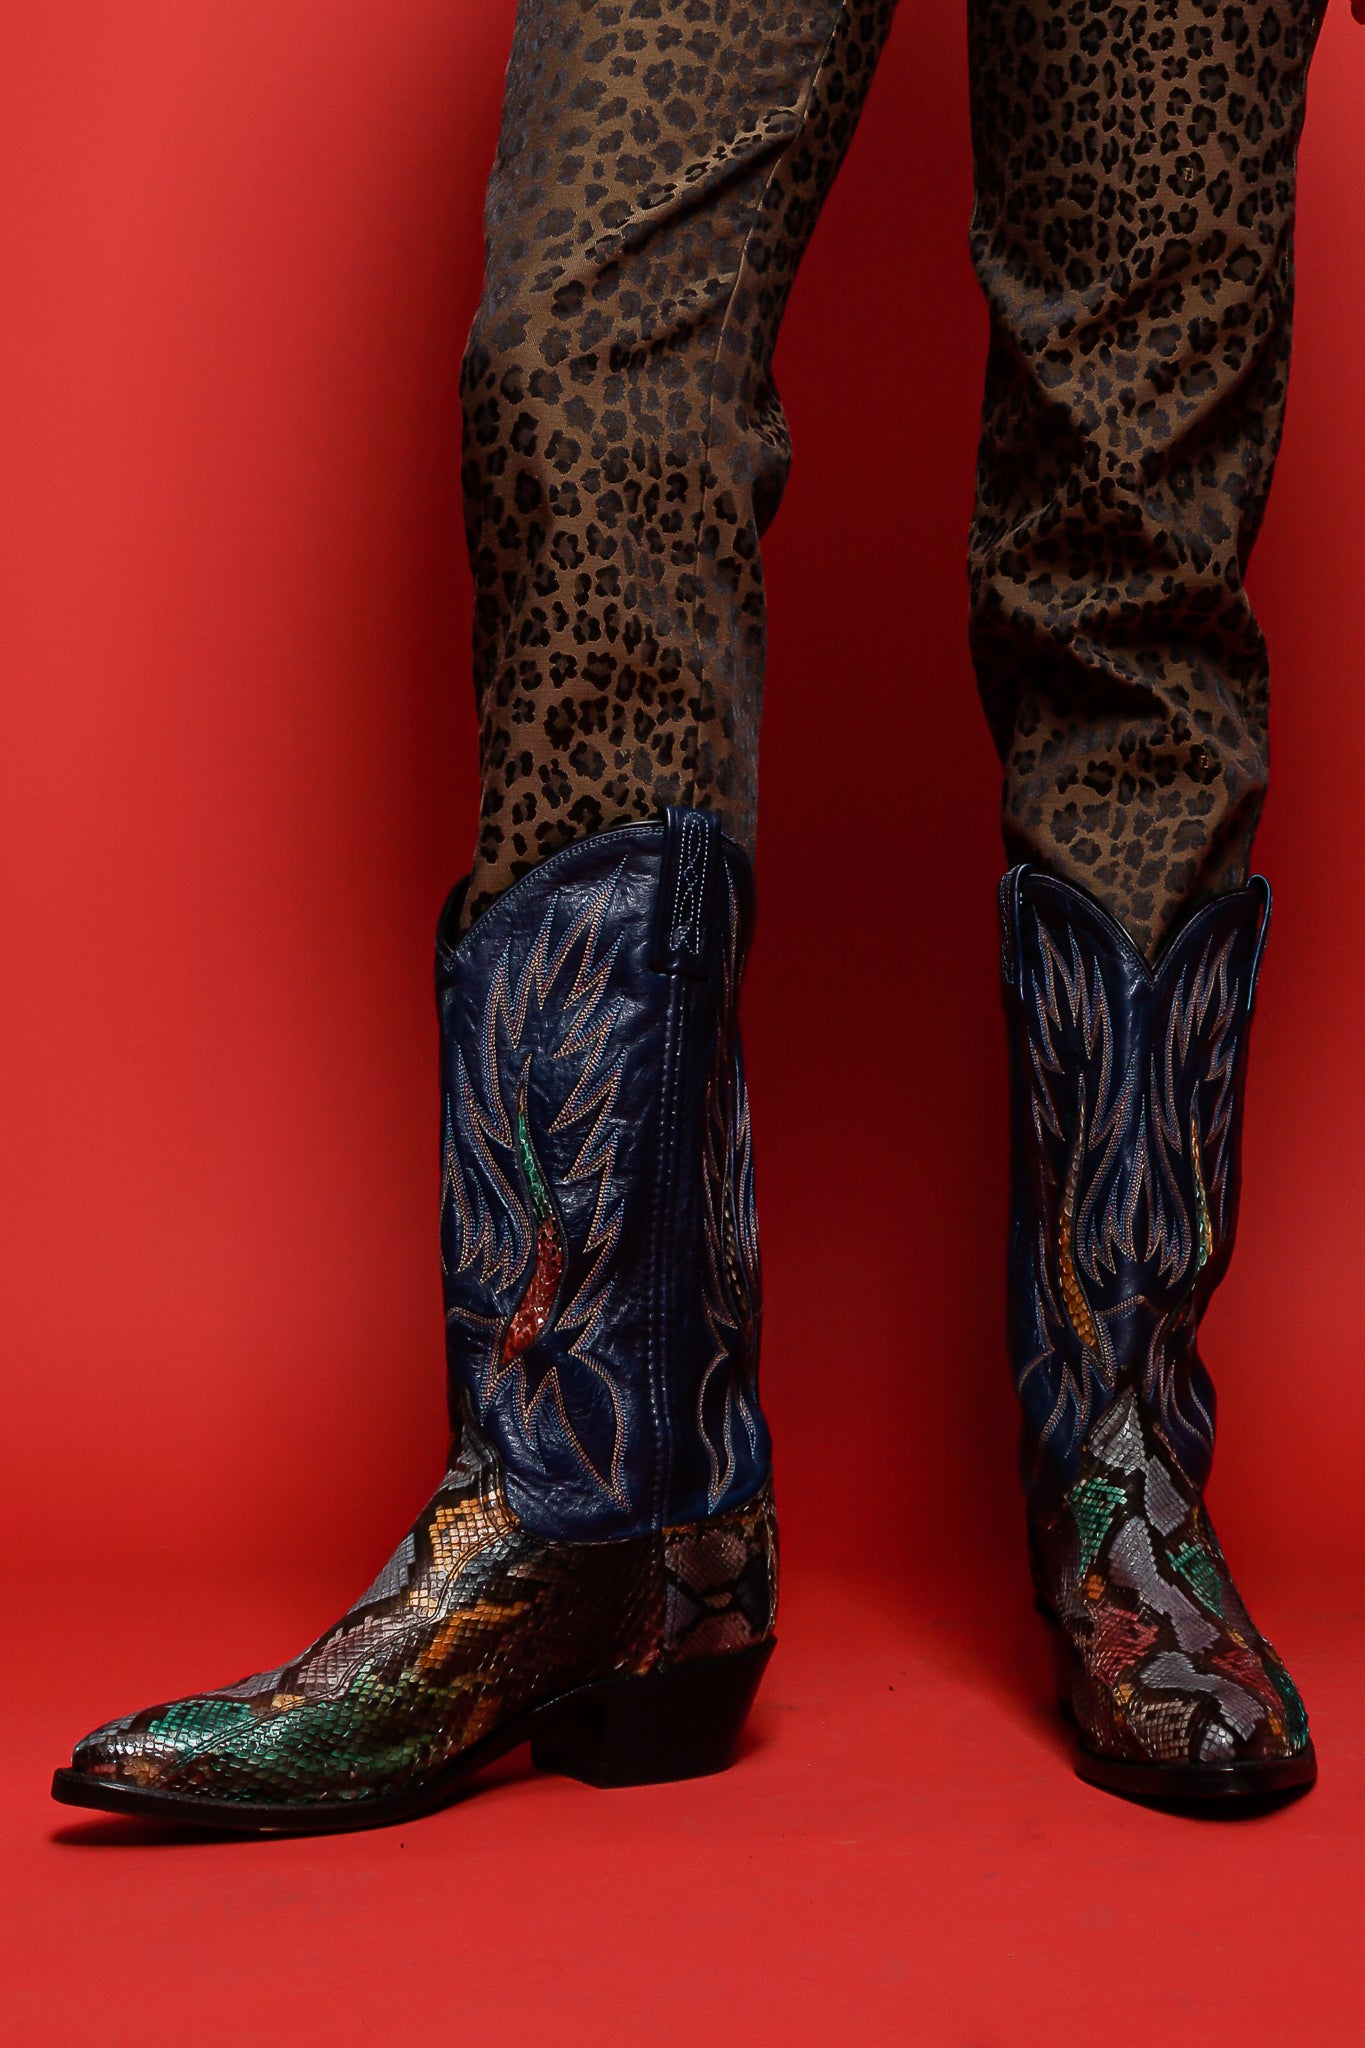 Fendi animal pant and multicolor snakeskin flame boots on red background at Recess Los Angeles